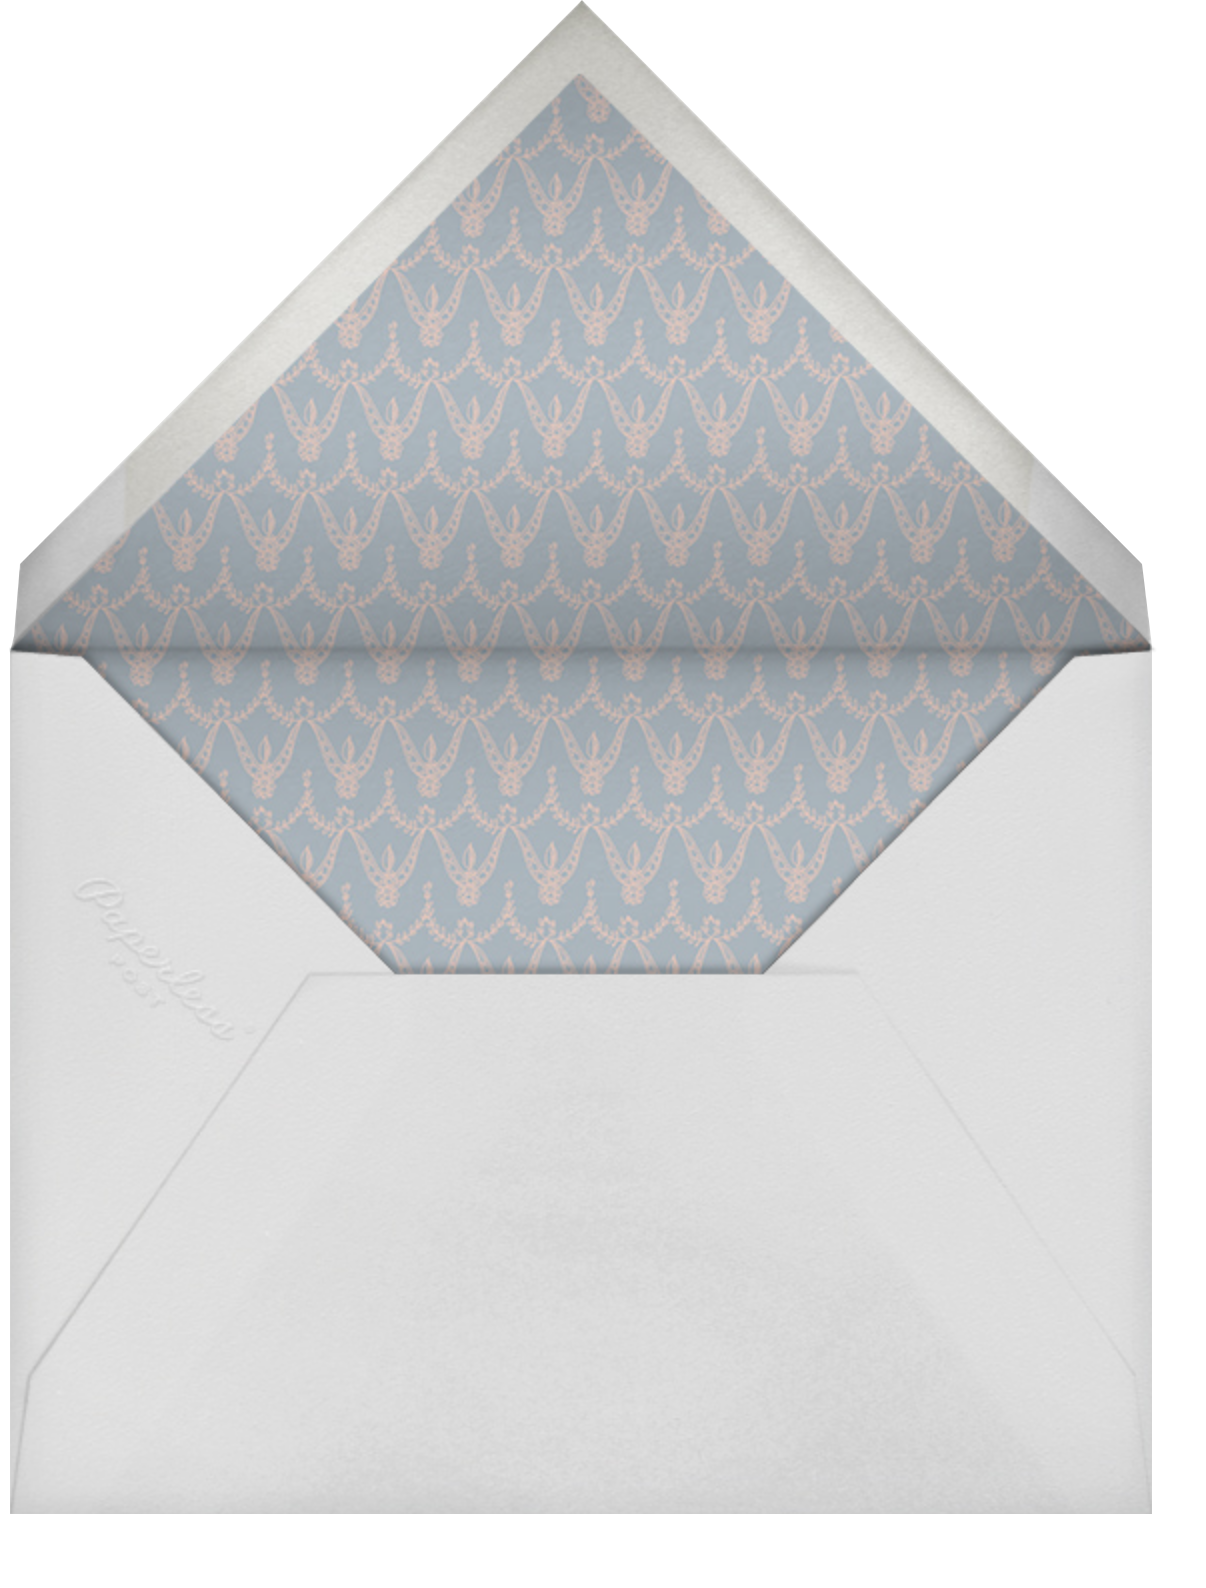 Damask - Ivory with Silver (Border) - Paperless Post - Envelope